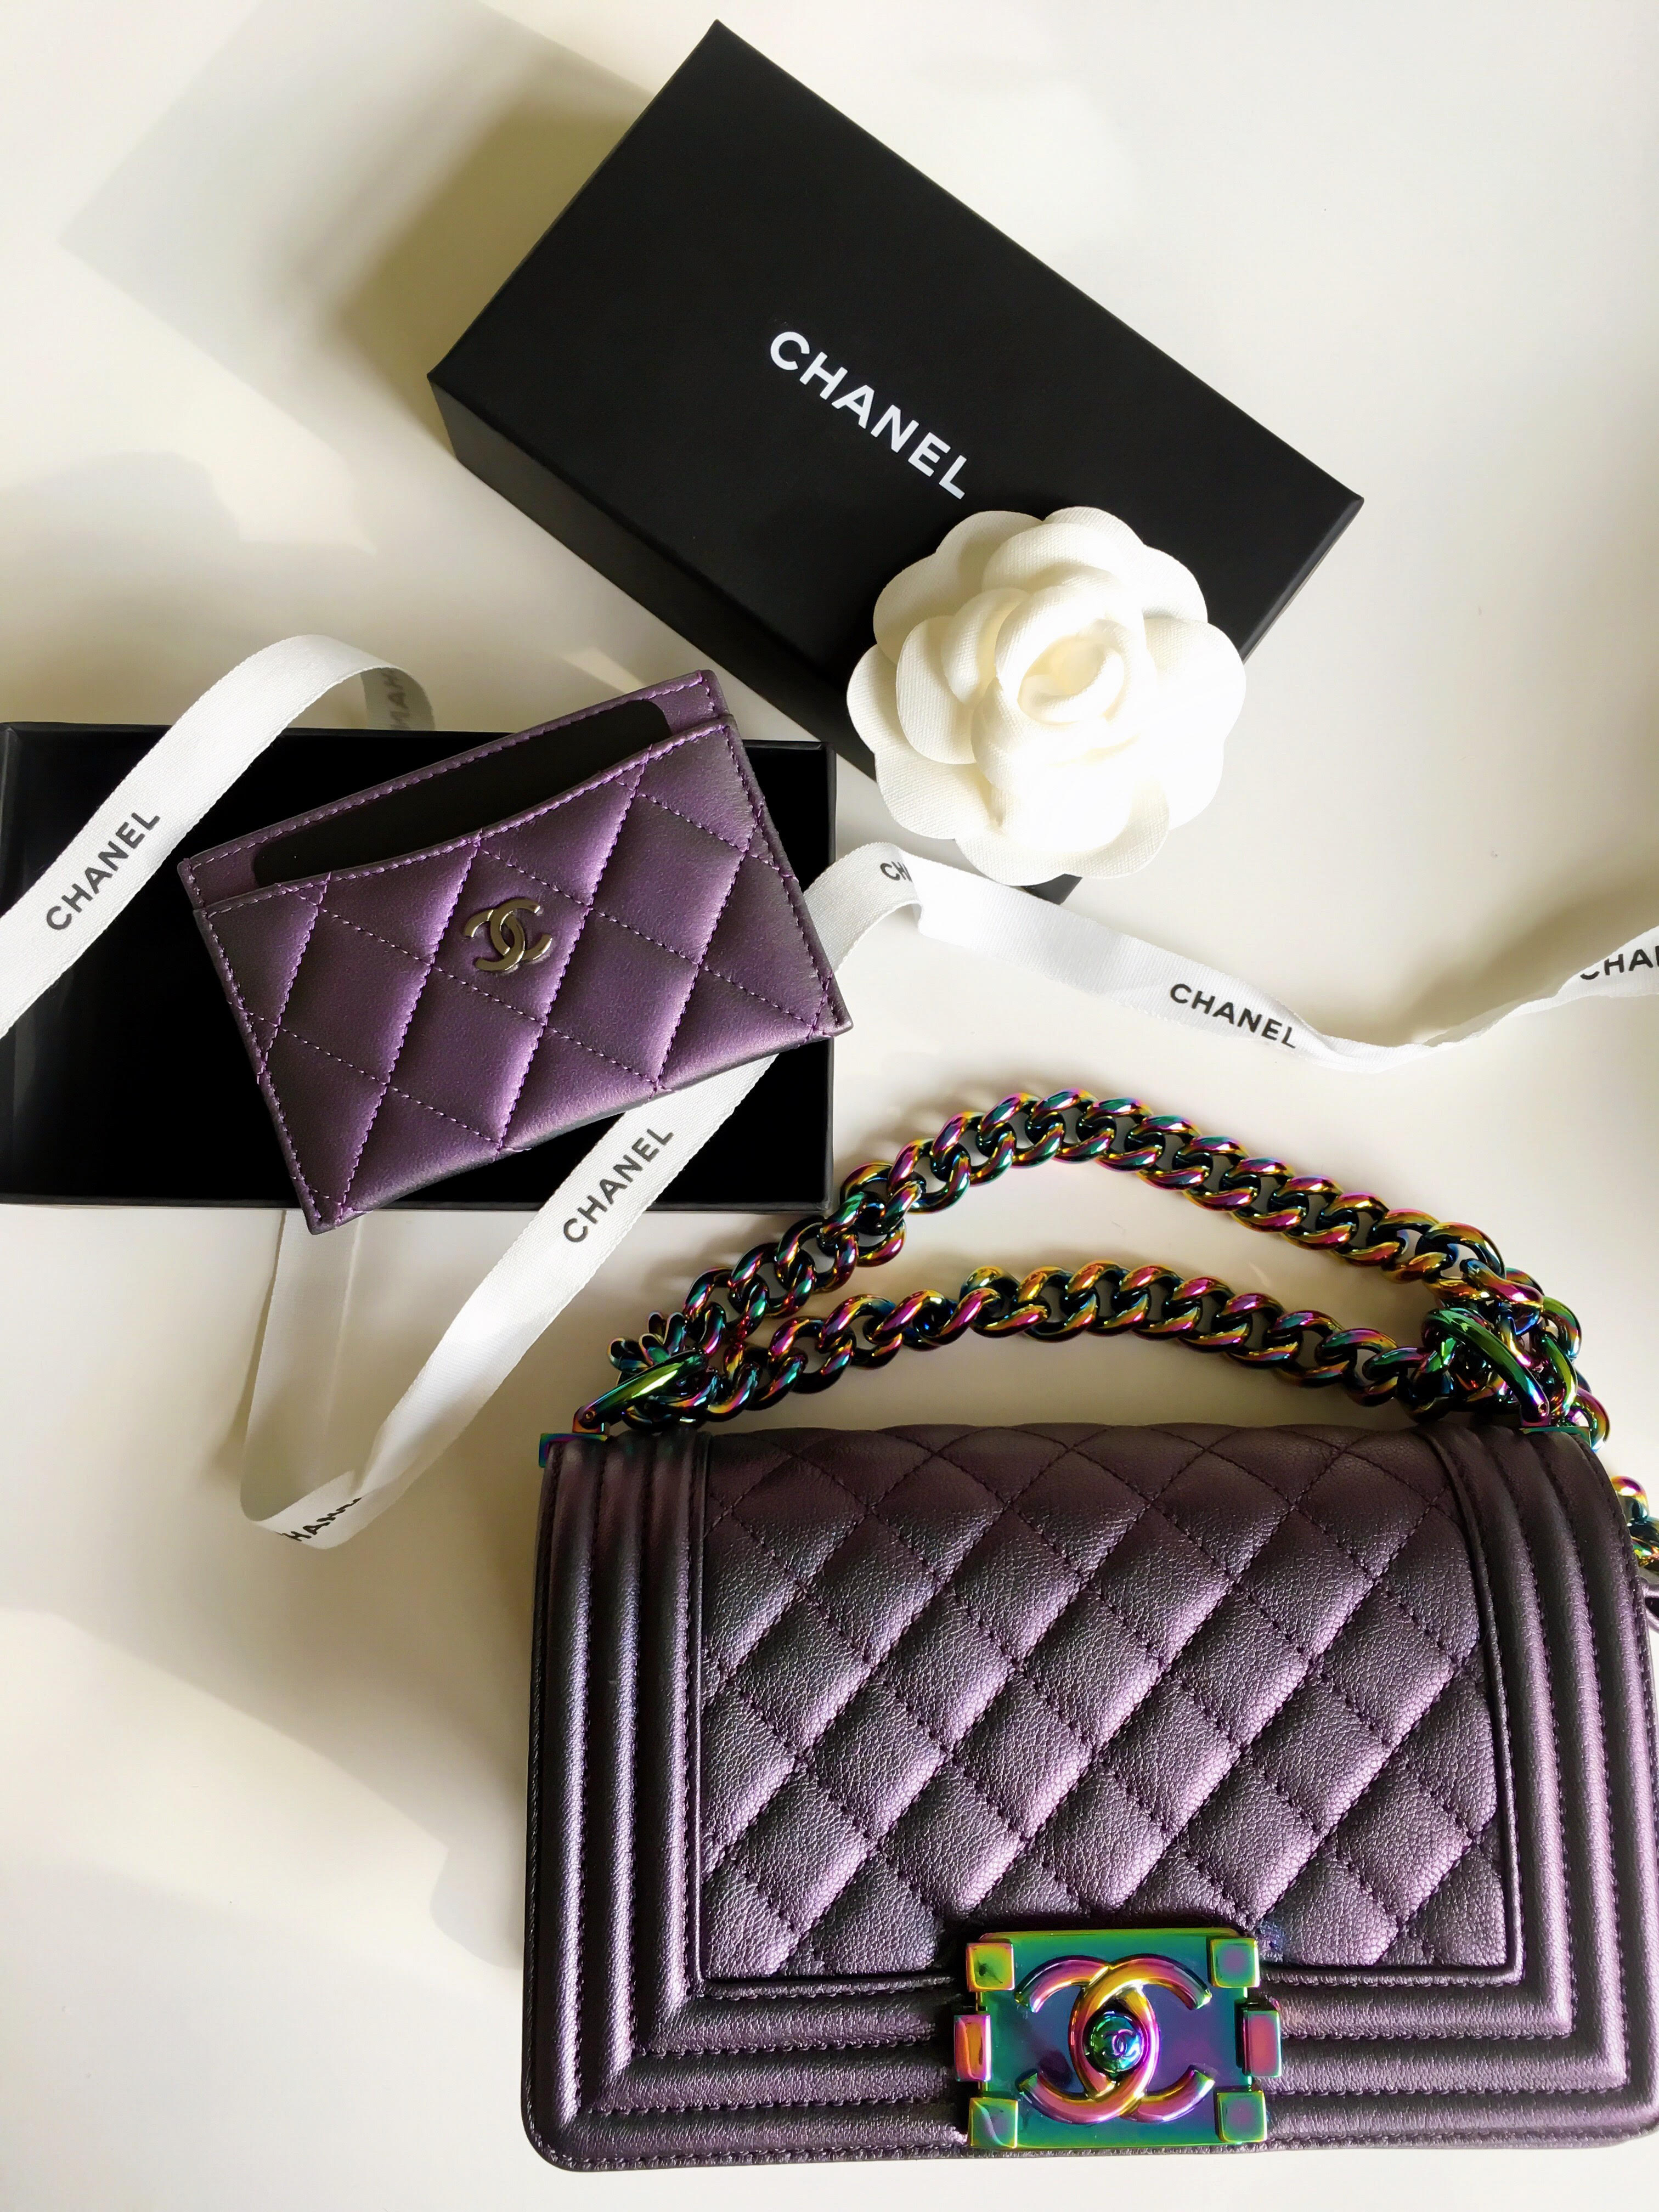 3ca43f39c006 I am very lucky to have this gorgeous bag in my Chanel collection, and it  truly feels like fate!